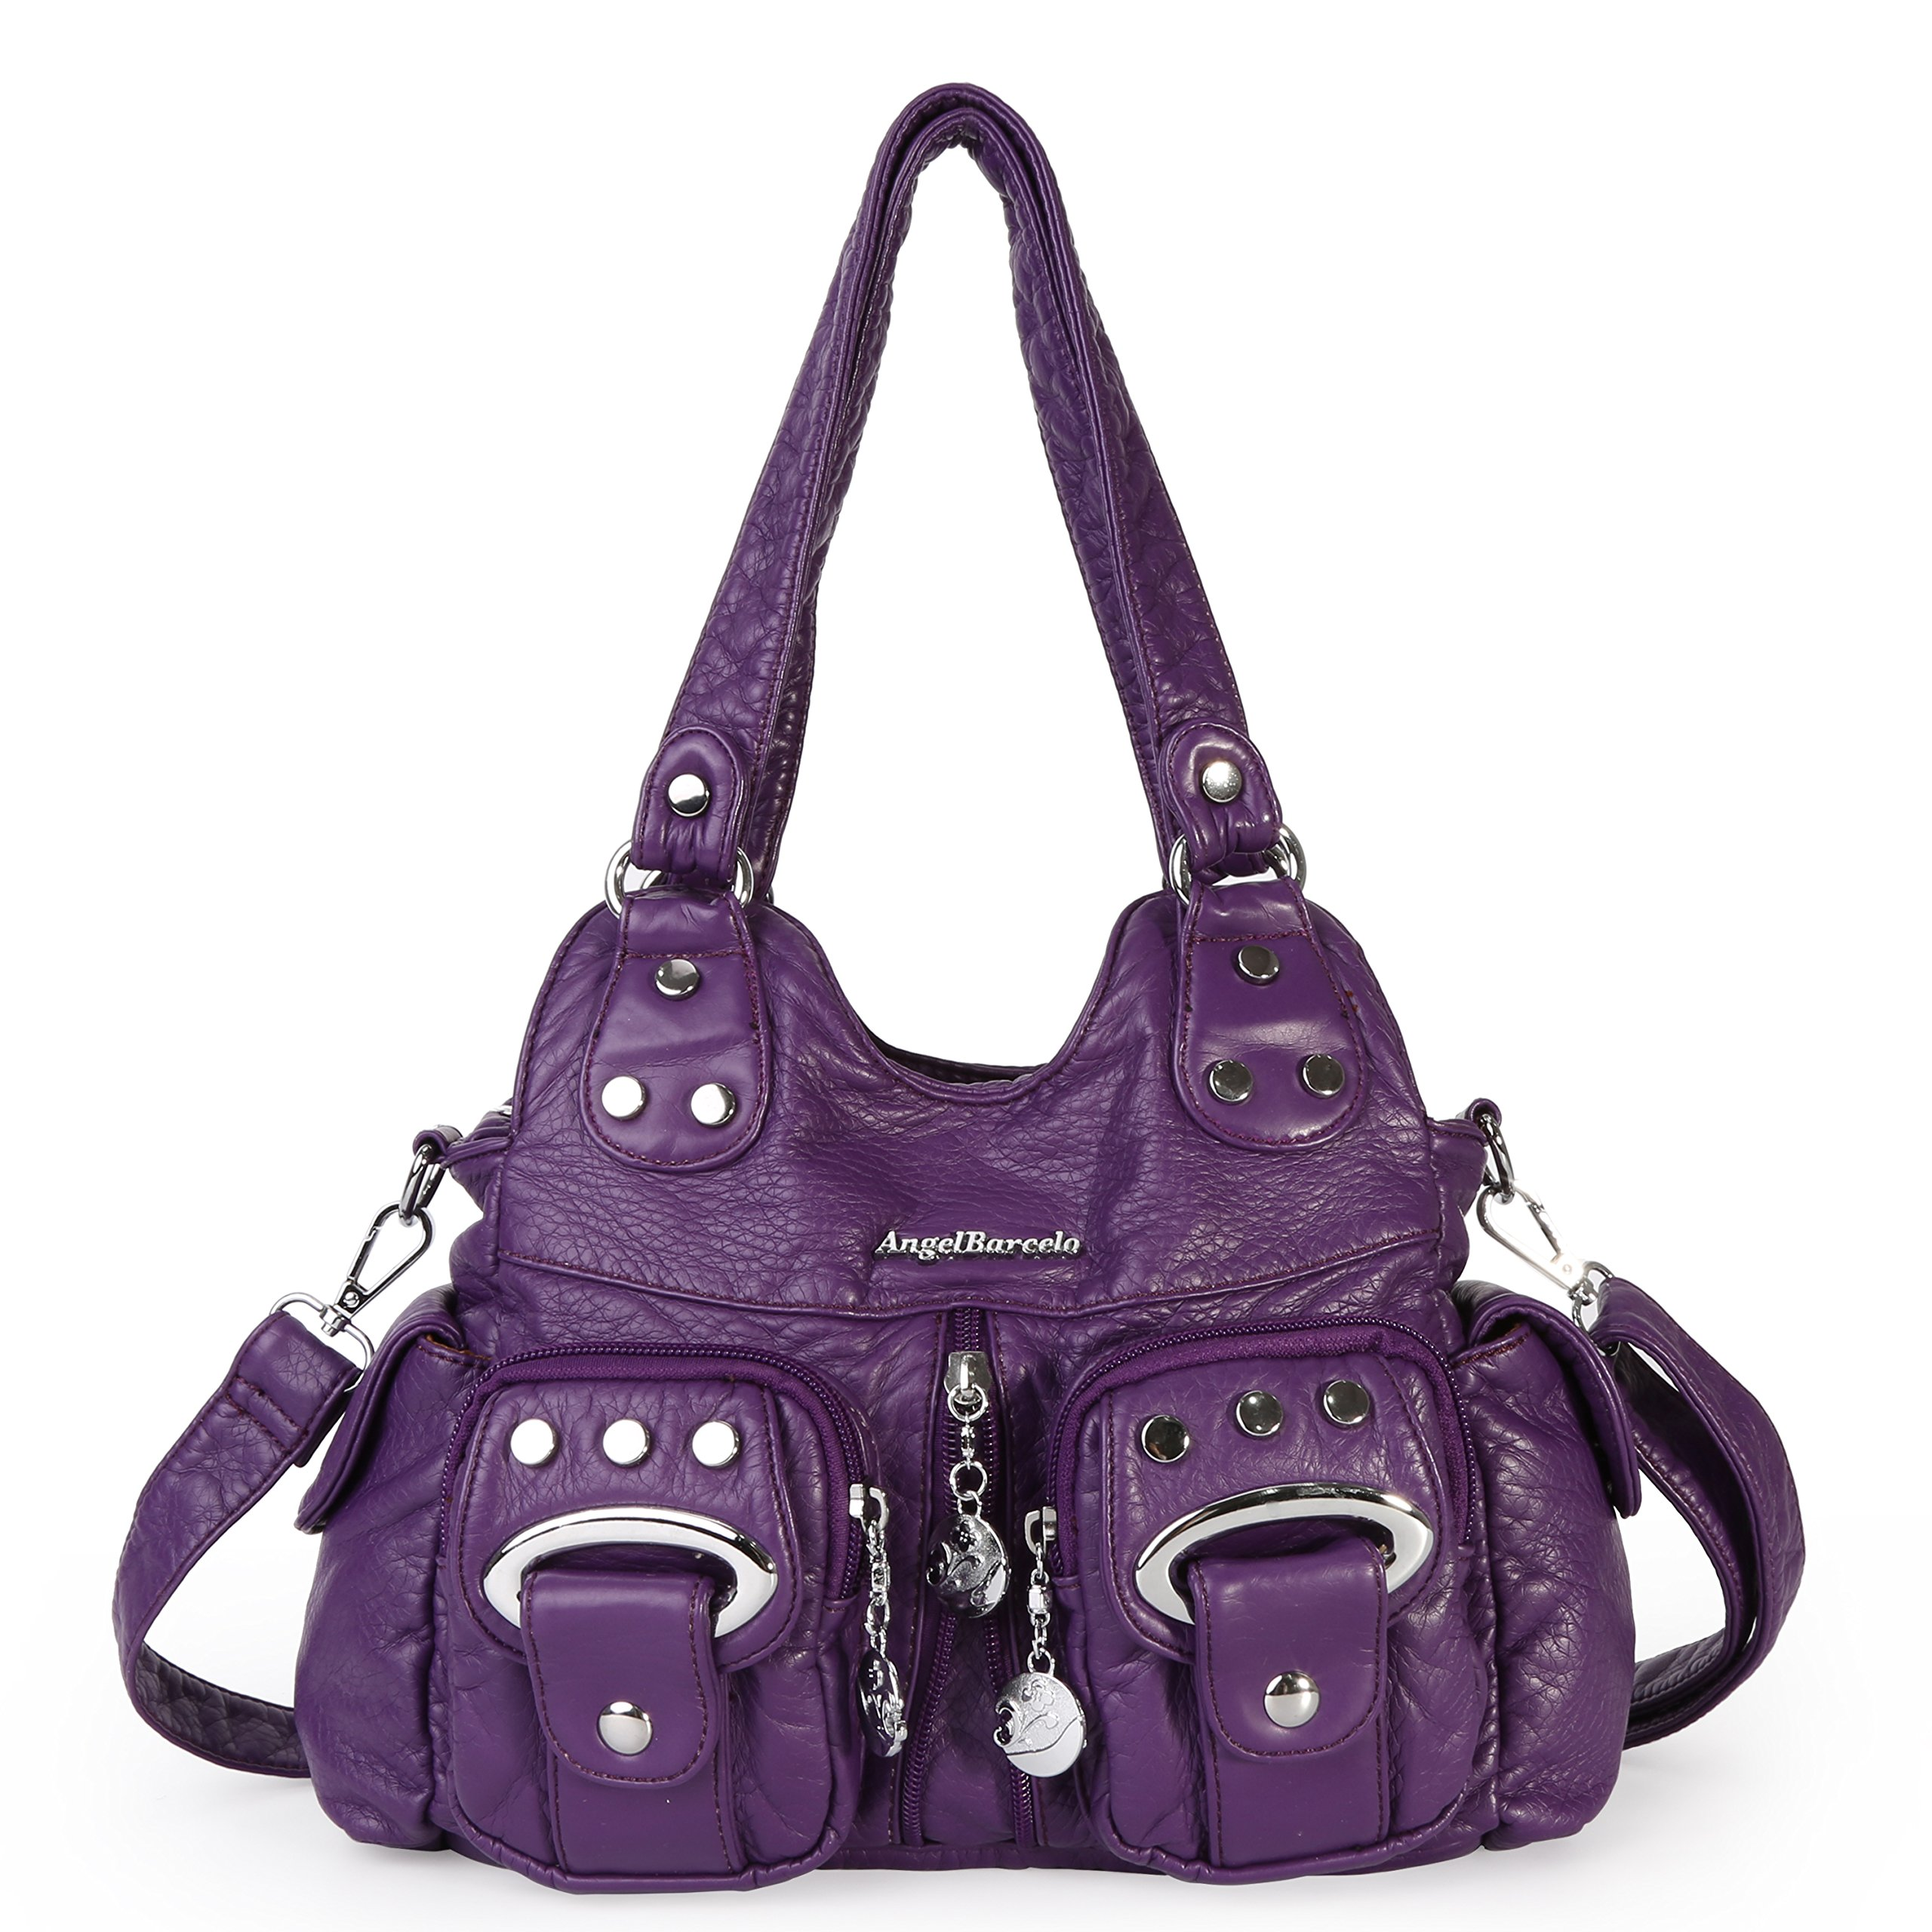 Angel Barcelo 3 Top Zippers Multi Pockets Purses and Handbags Leather Shoulder Bags Backpack Women (Purple)